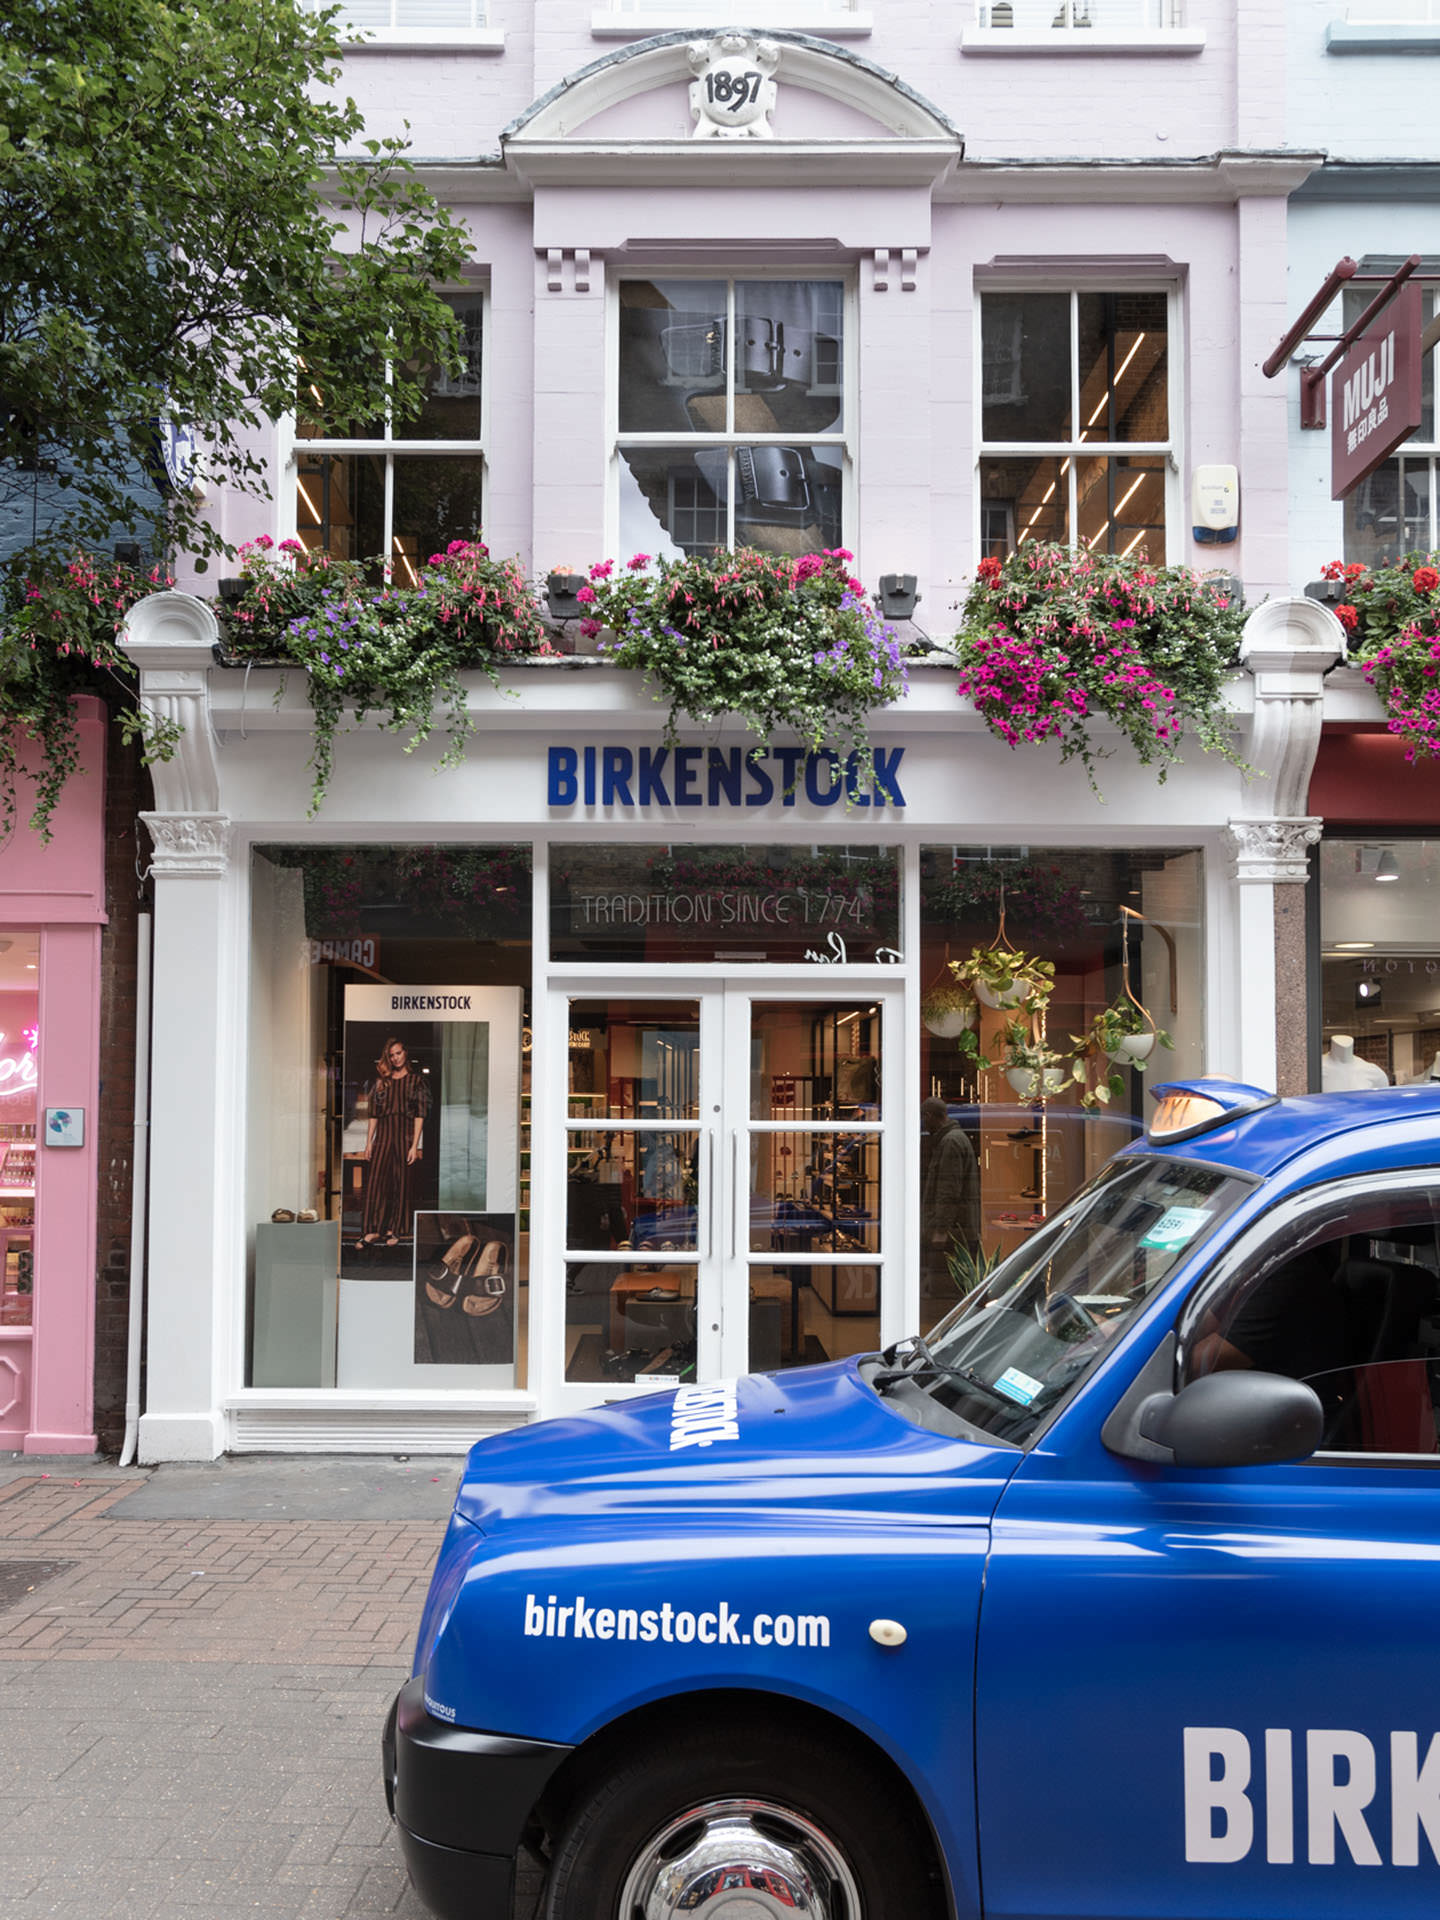 Exterior view on the Birkenstock Store in Carnaby, London